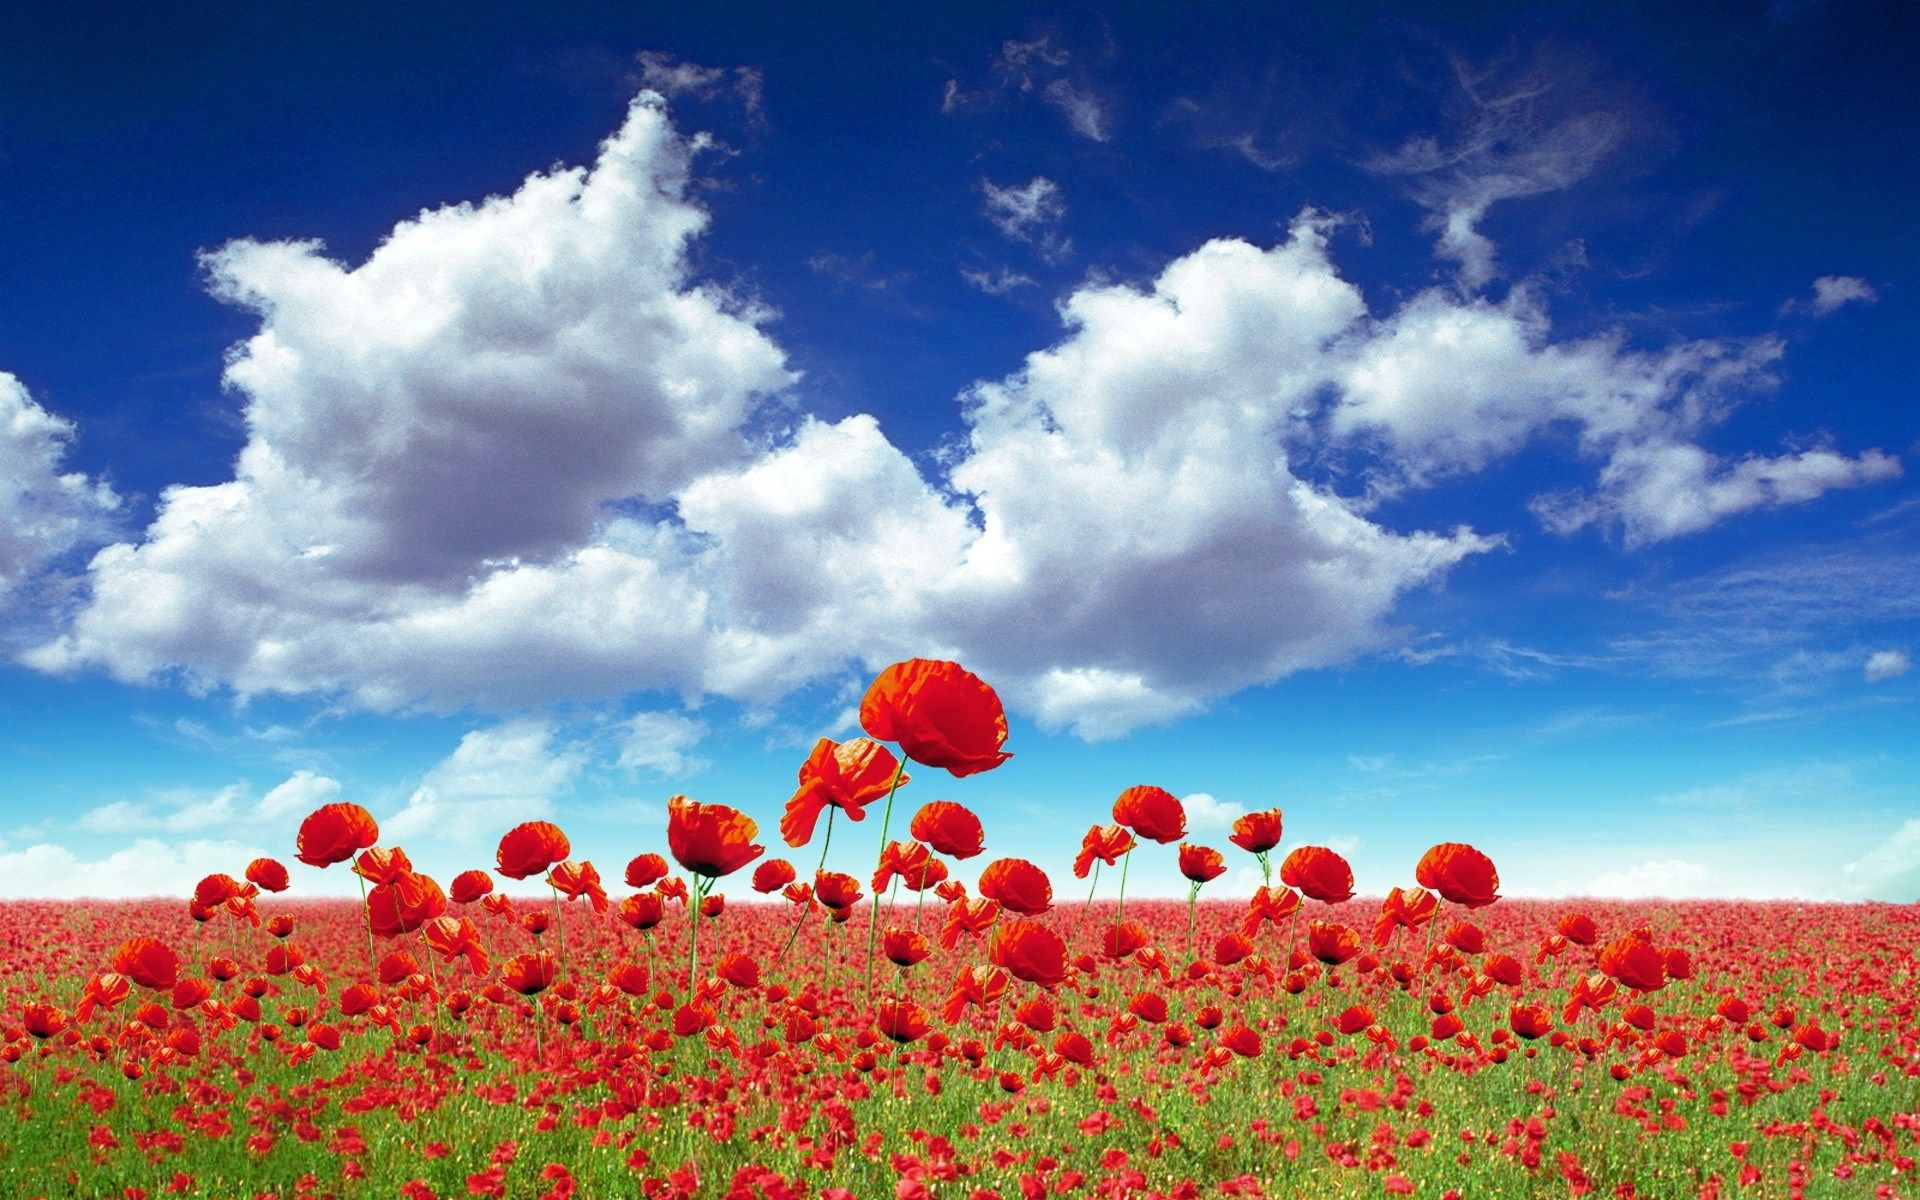 fitzpatrick jacobson - poppy images for desktop background